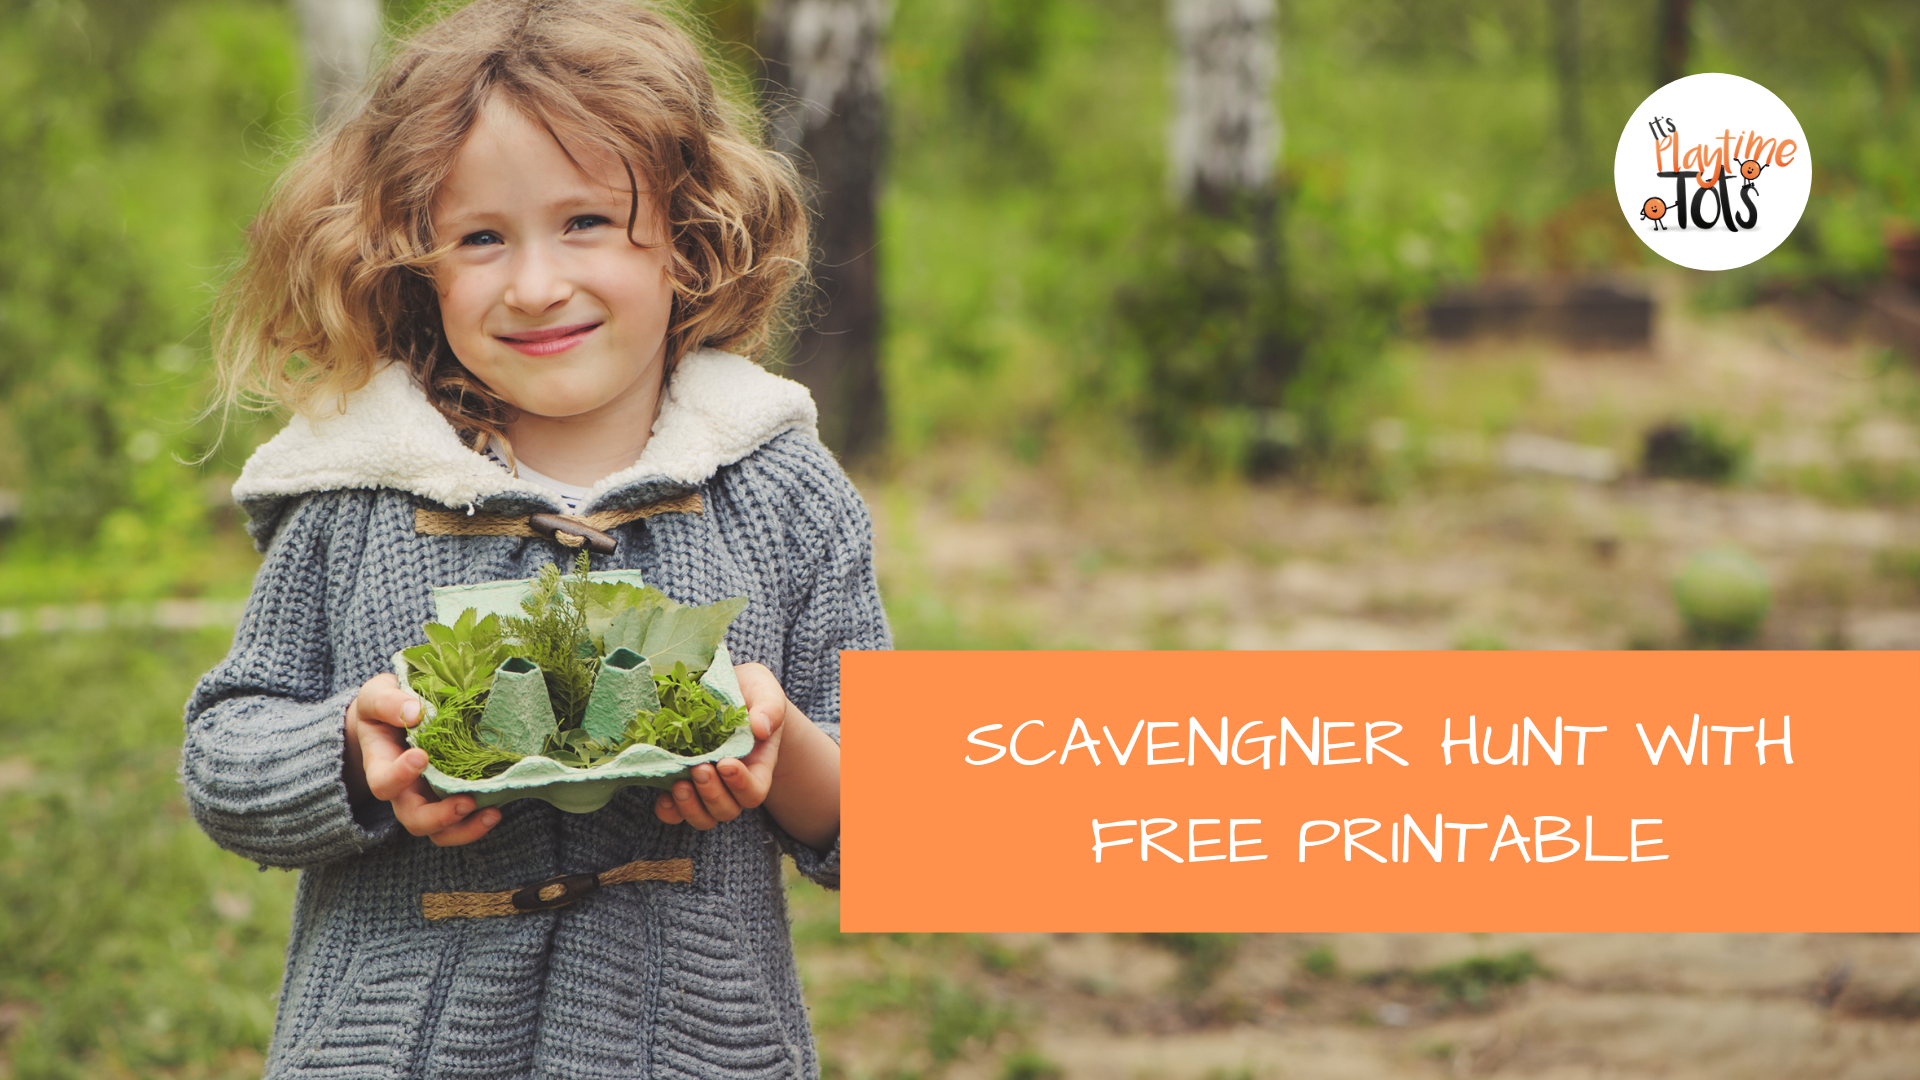 Scavenger Hunt with Free Printable